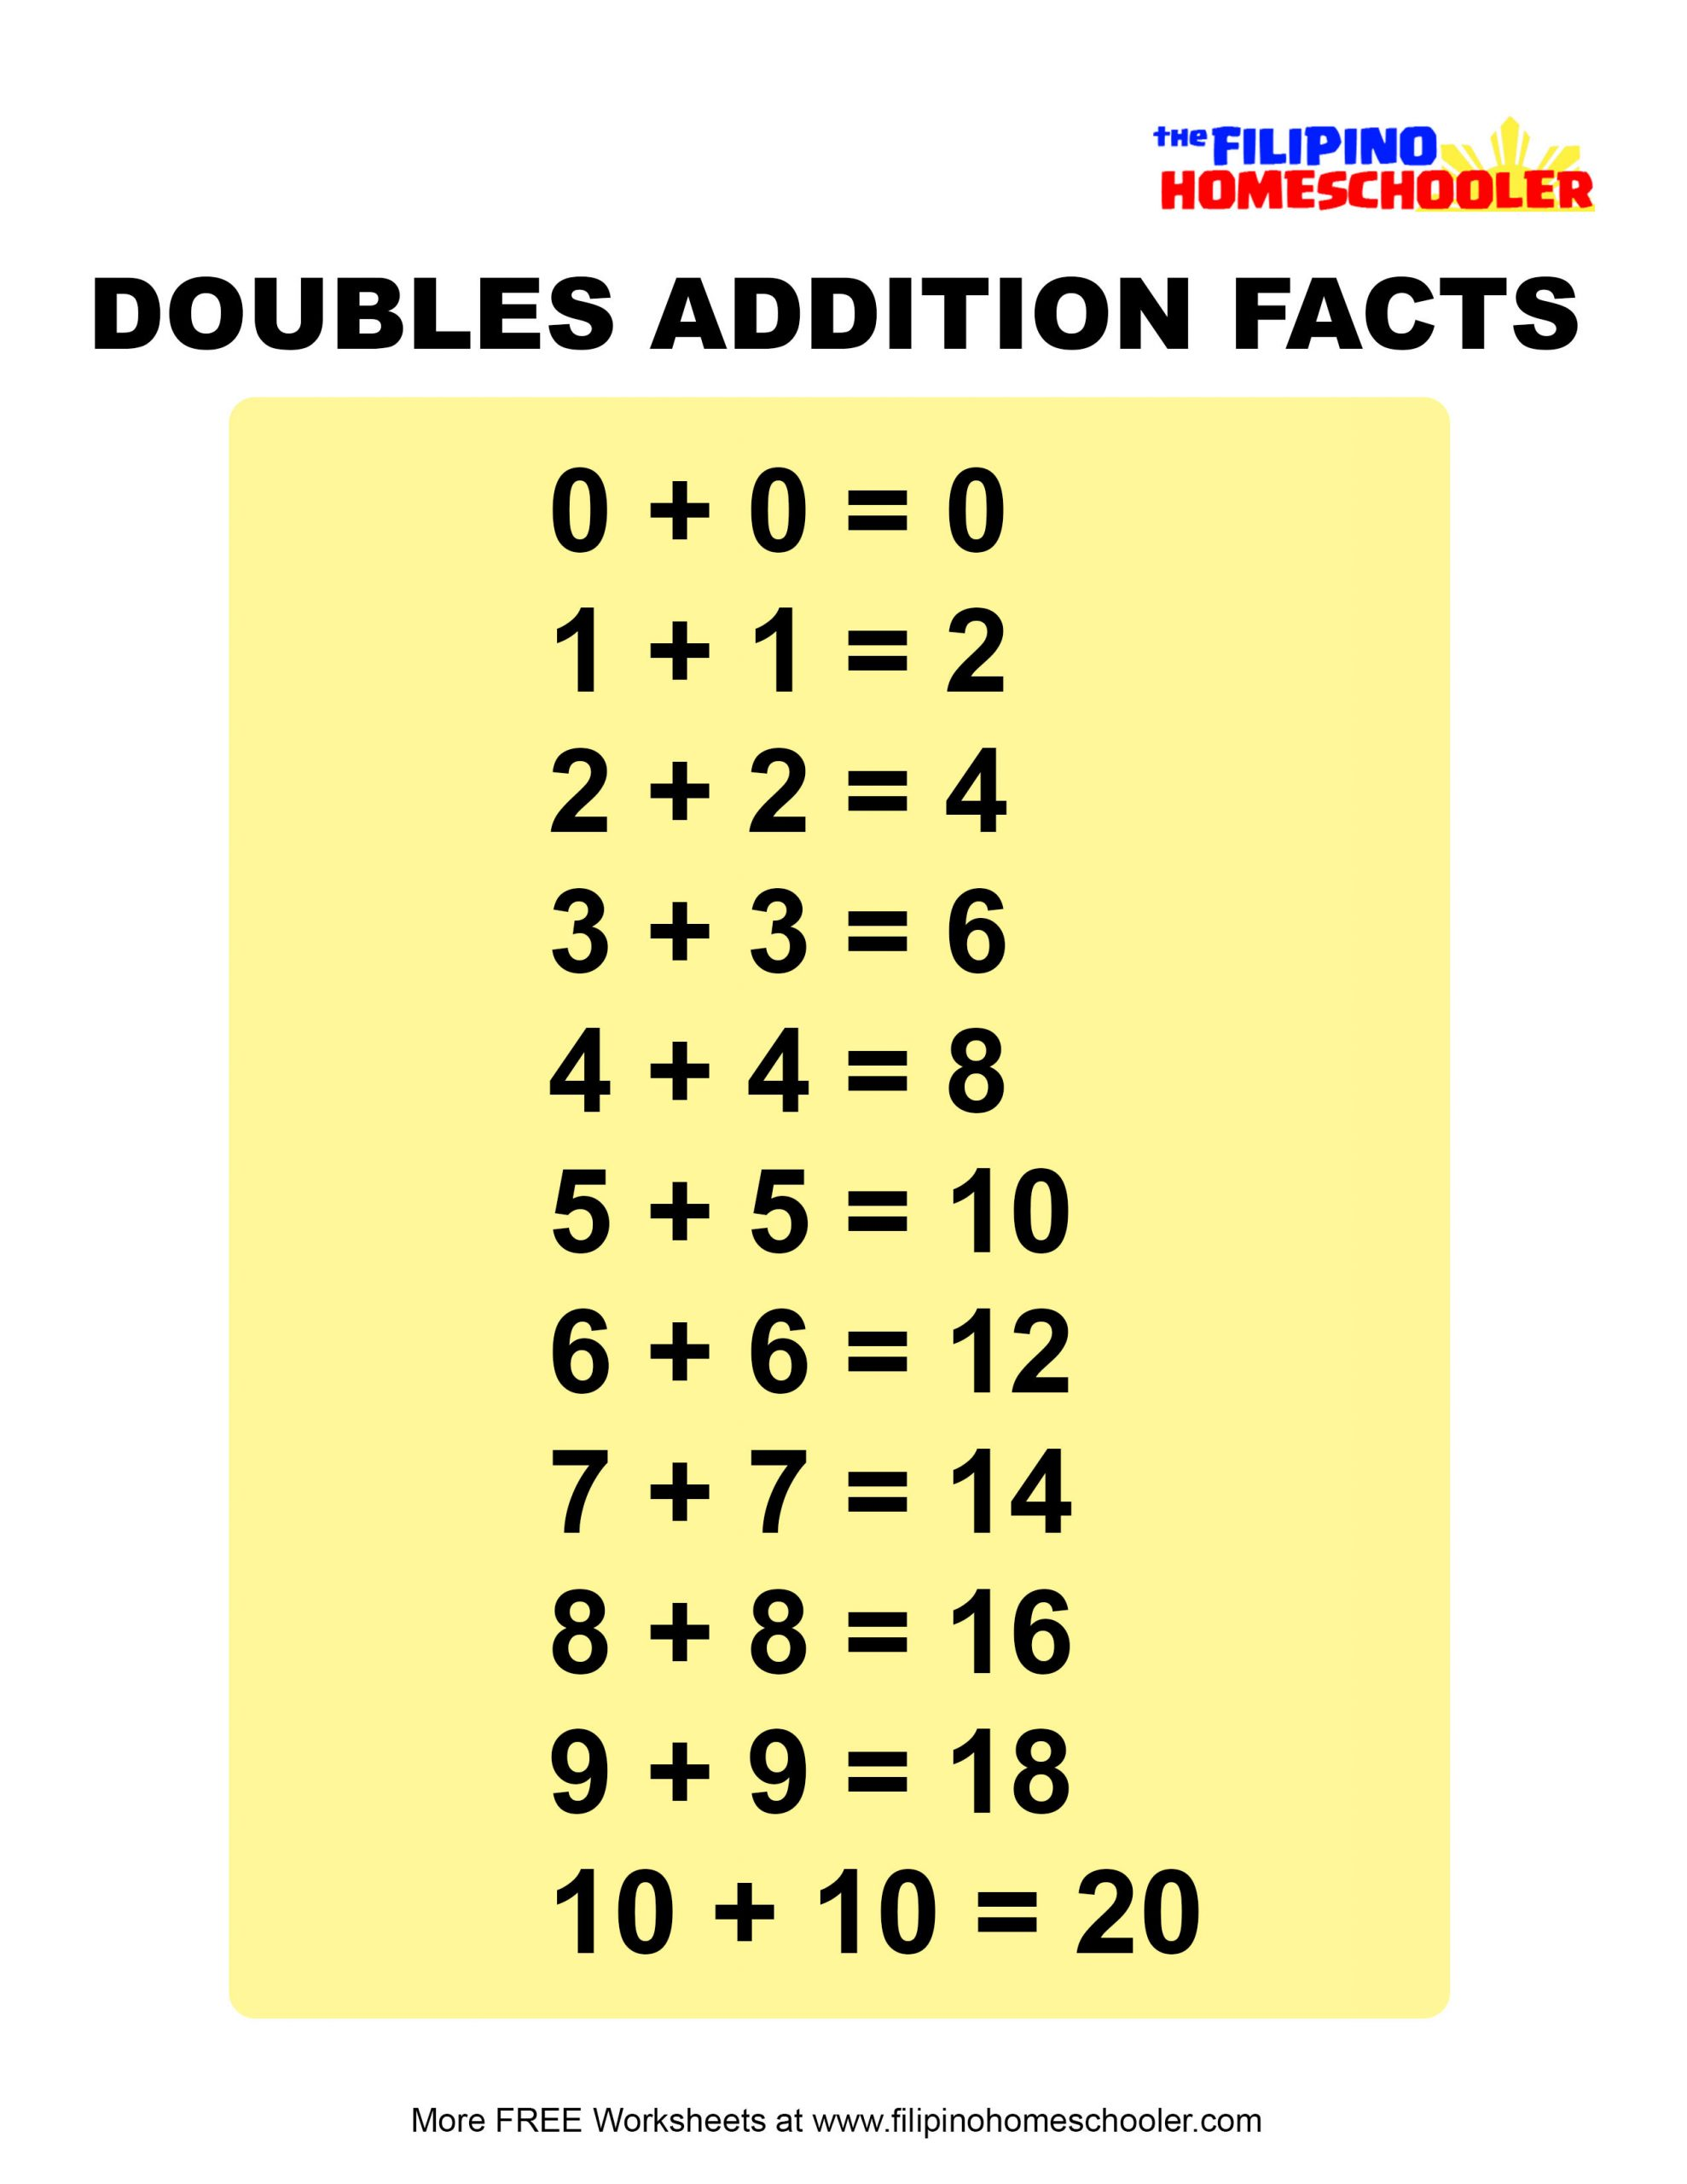 Doubles Math Facts Worksheet Adding Doubles Worksheets and Teaching Strategies — the